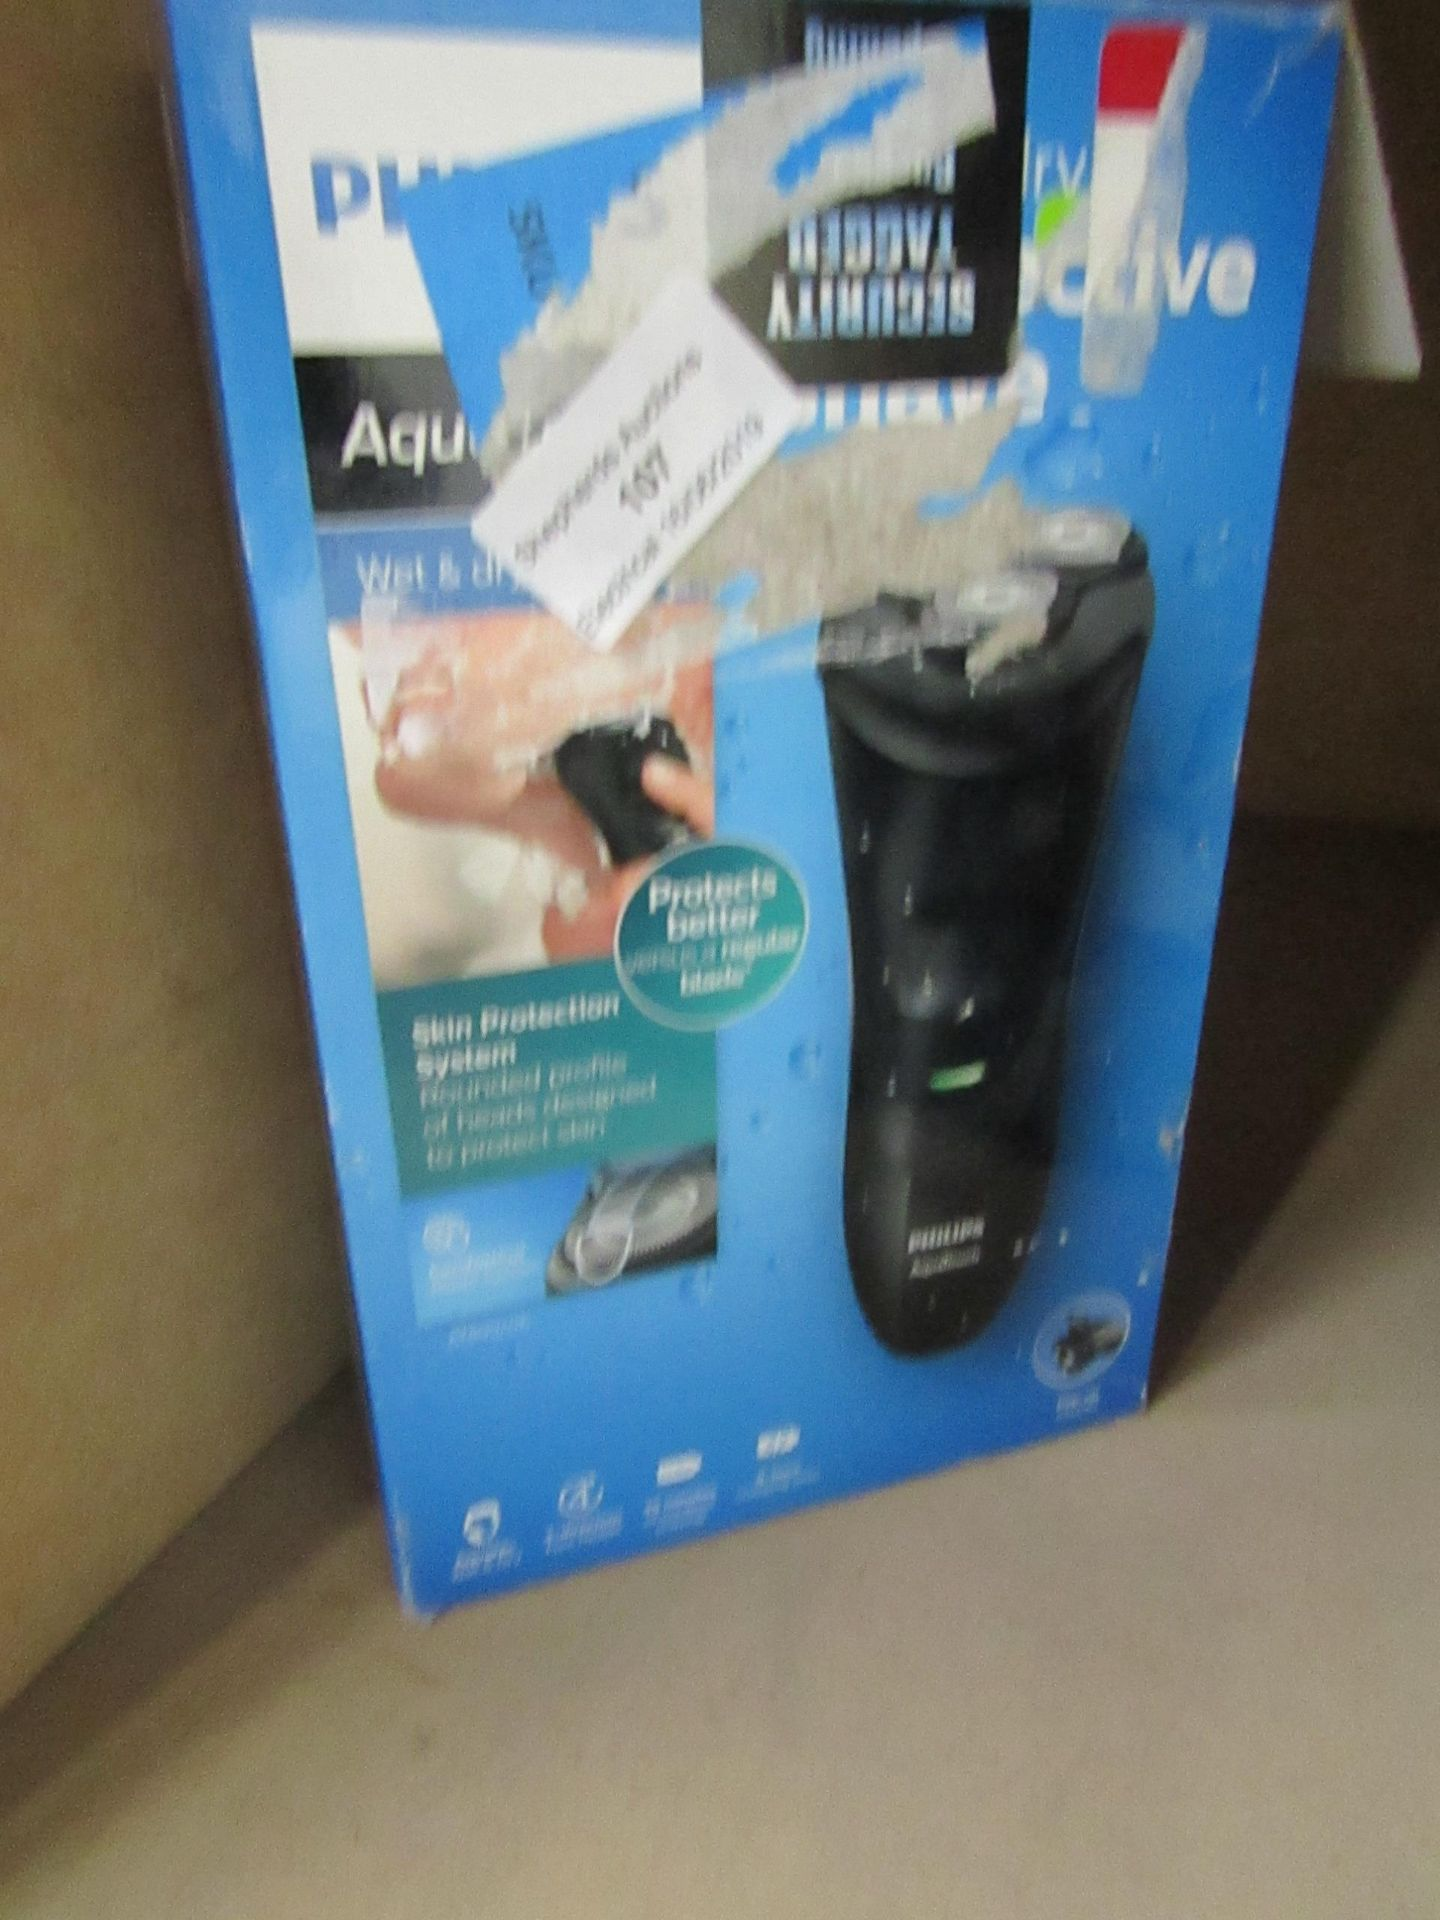 Lot 107 - Philips wet and dry beard trimmer, untested and boxed.